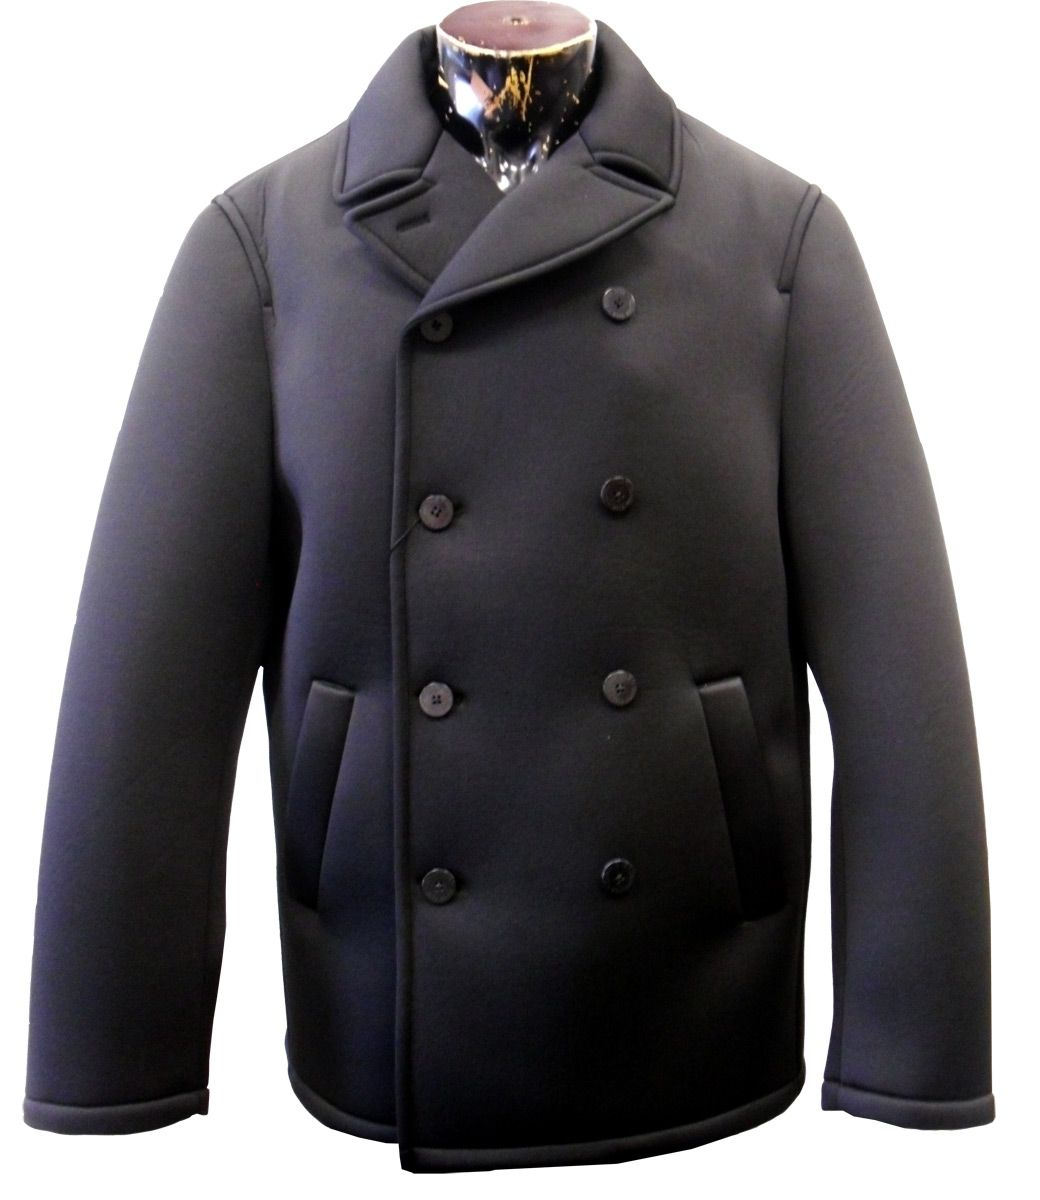 Silversilk Men's Double Breasted Outlet Pea Coat - All Weather